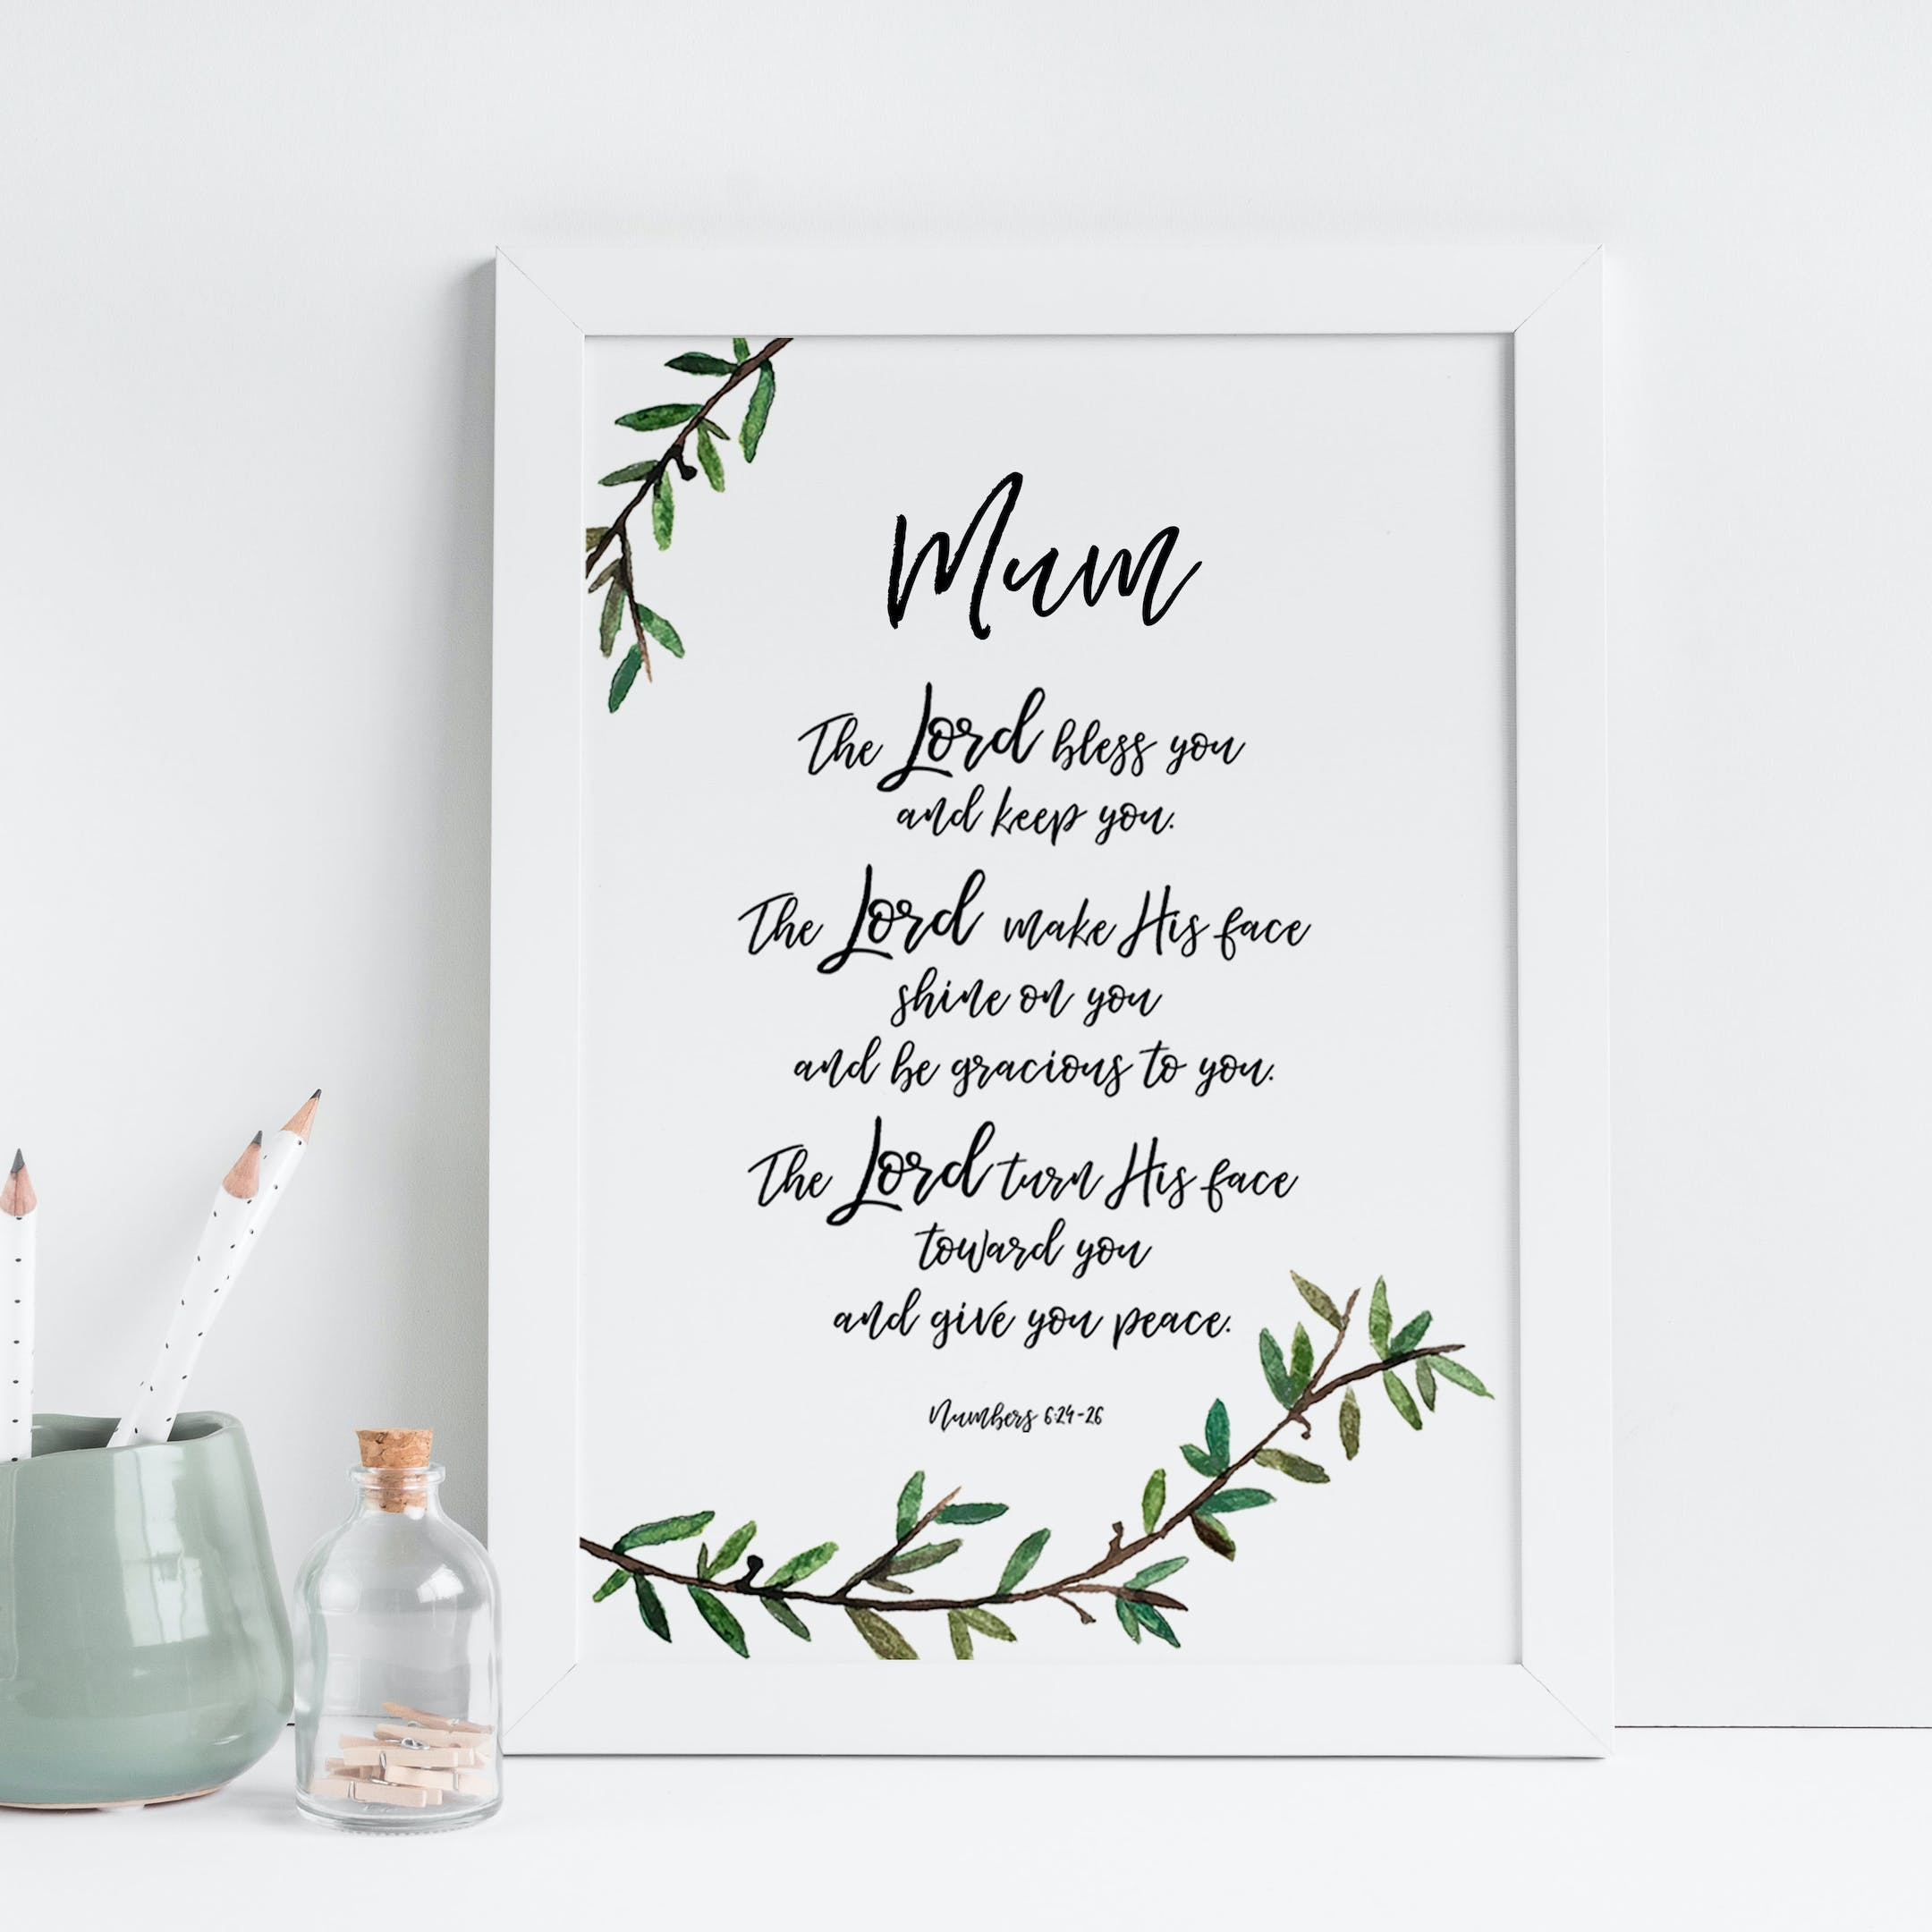 Mum Personalised The Lord Bless You And Keep You Print - Numbers 6:24-26 - Christian Lettering Company